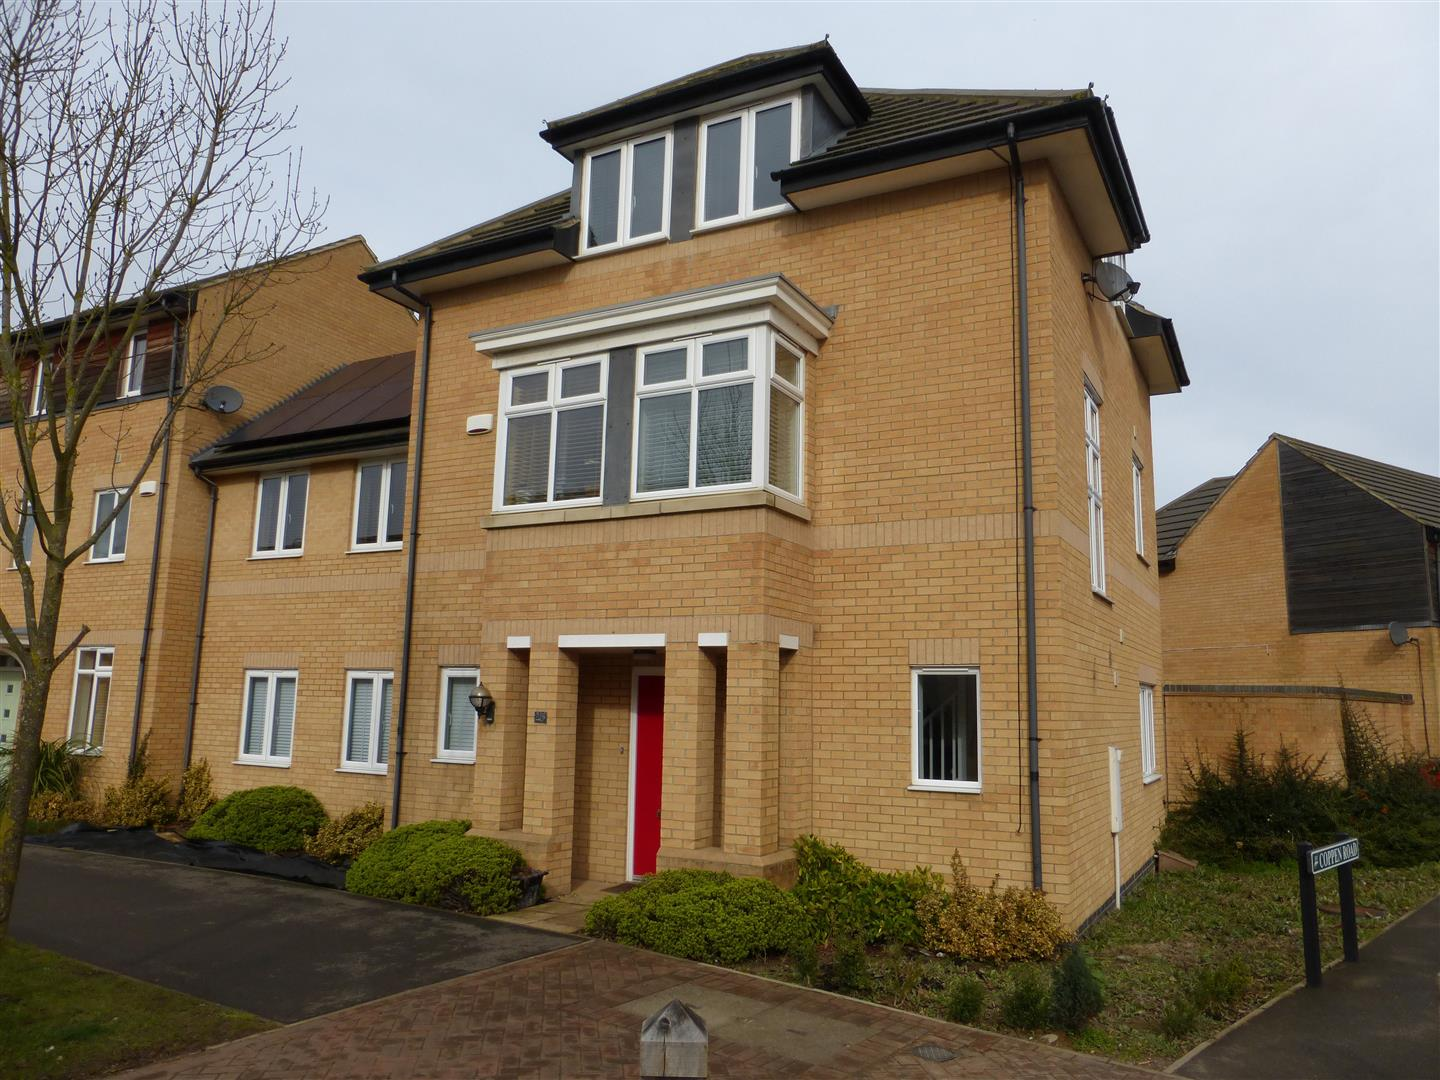 4 Bedroom Property For Sale In Four Chimneys Crescent Hampton Vale Peterborough Pe7 Regal